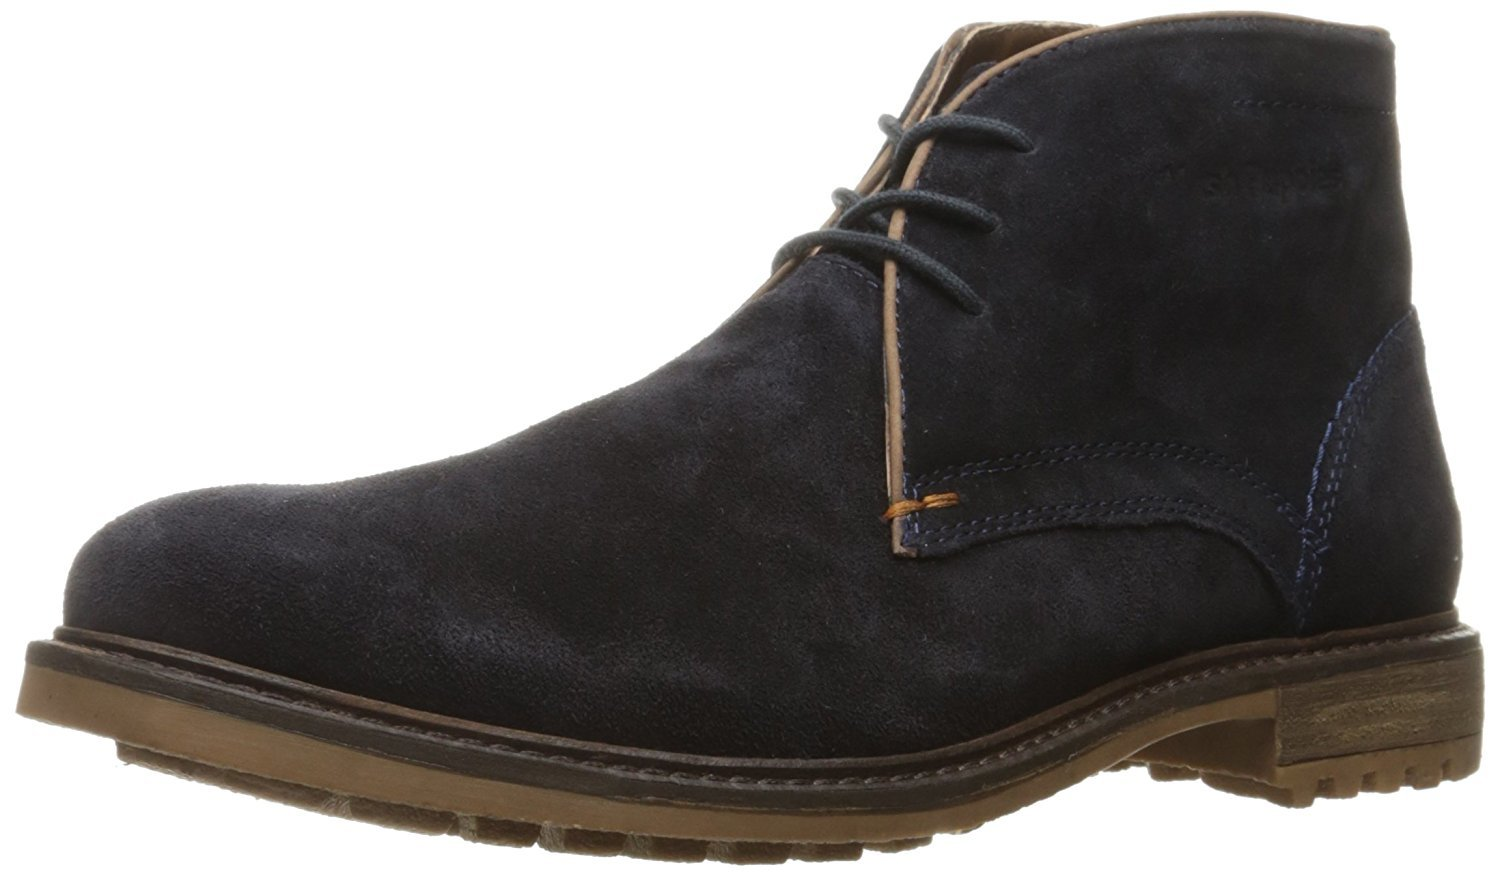 Hush Puppies BENSON RIGBY Mens Suede Lace Up Chukka Boots by Wolverine